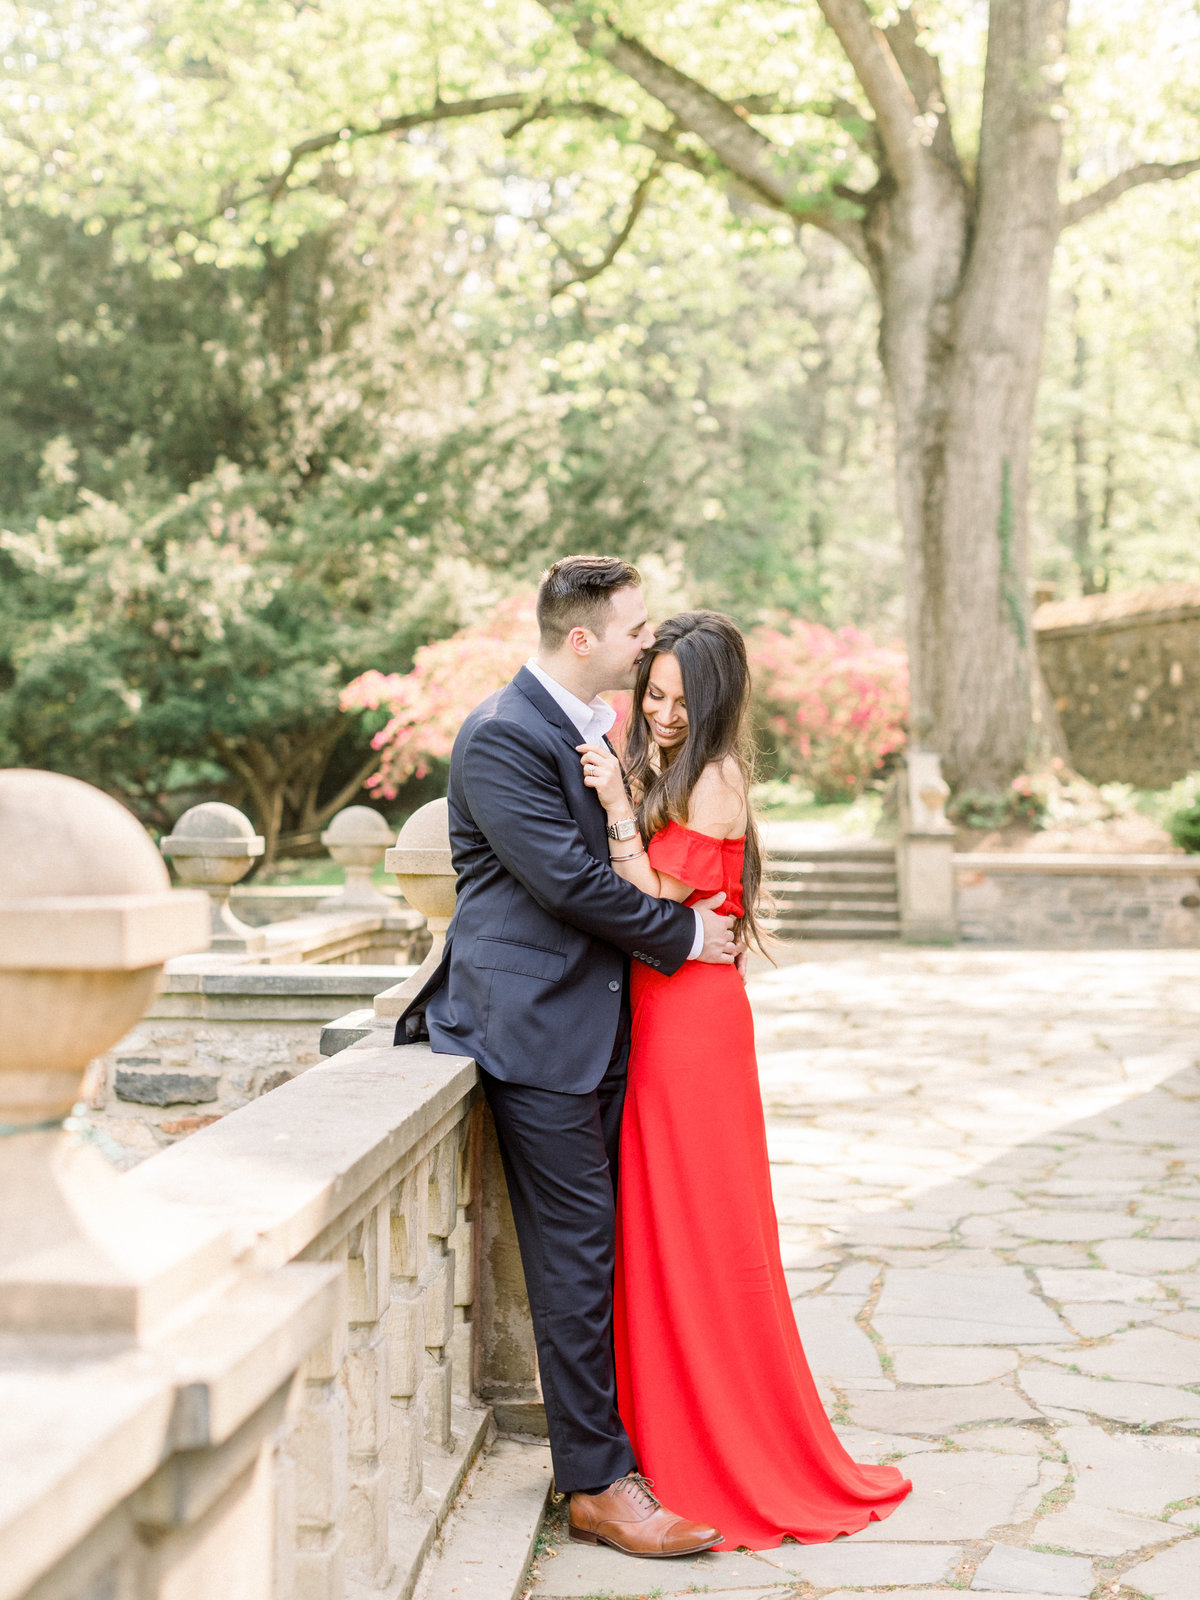 NicoleandBrian_LaurenFairPhotography_Final-26